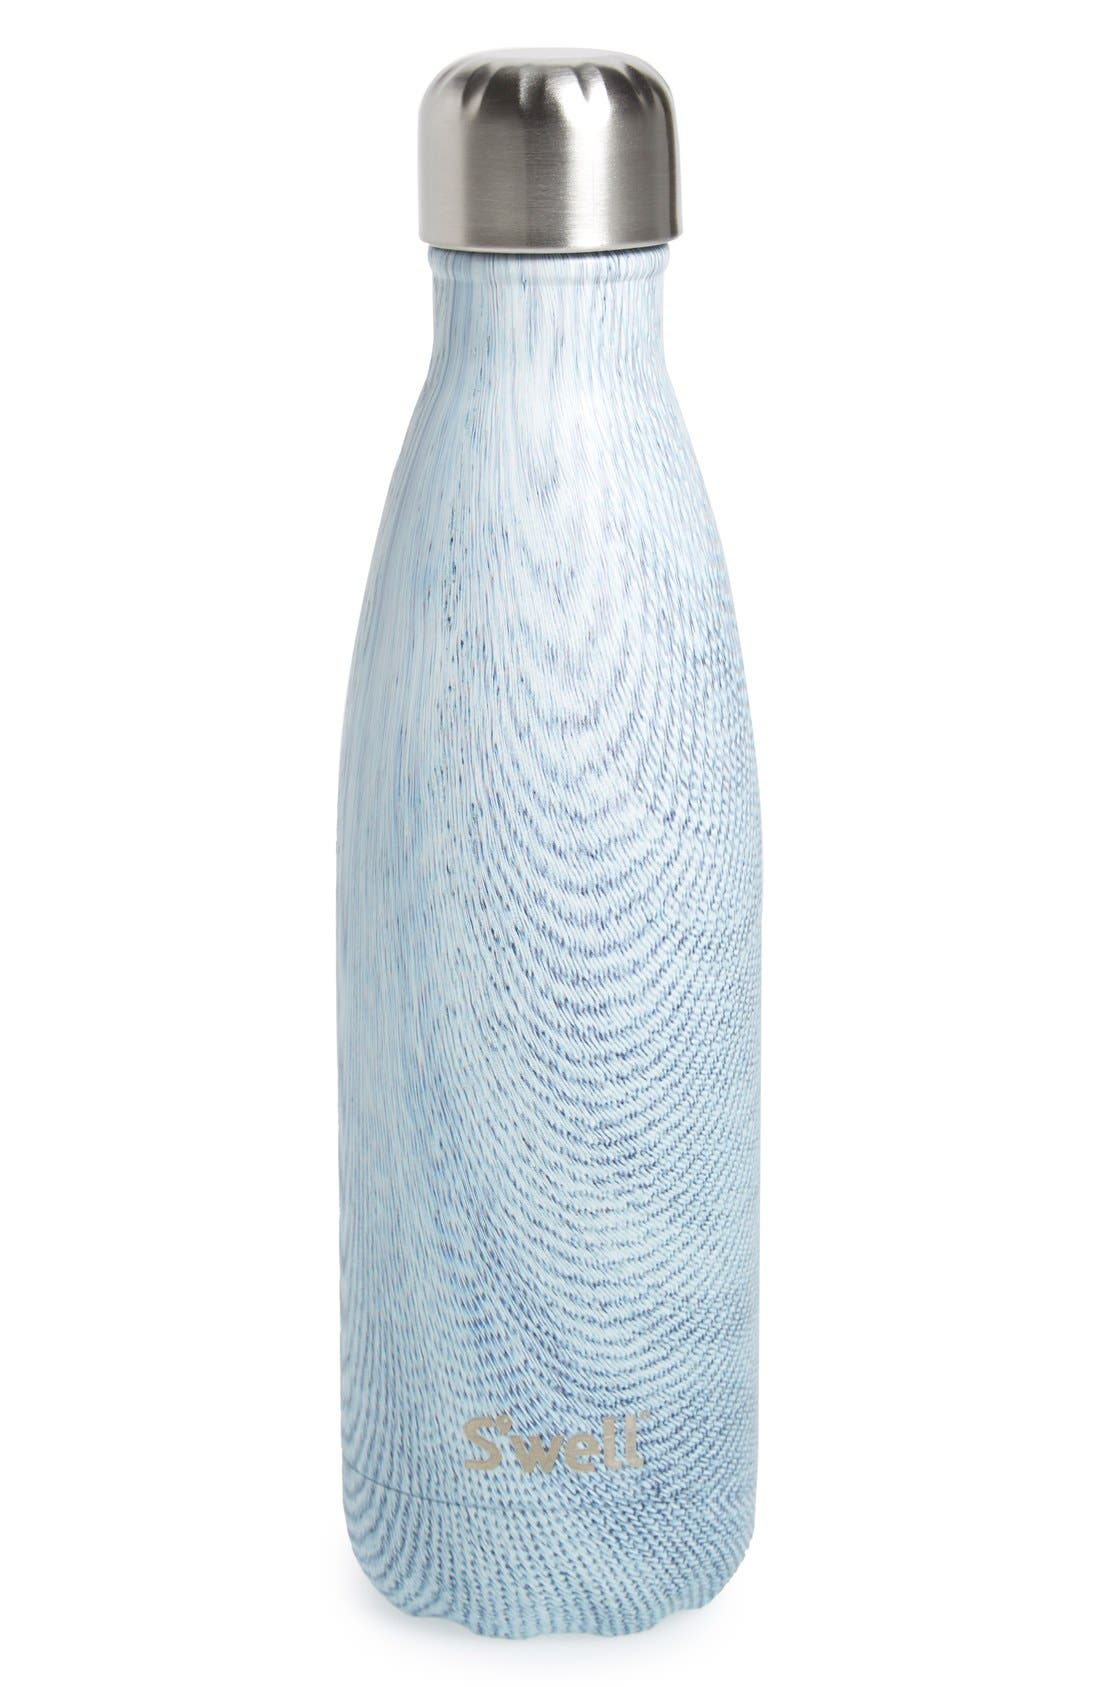 Main Image - S'well 'Textile Collection - Blue Jean' Stainless Steel Water Bottle